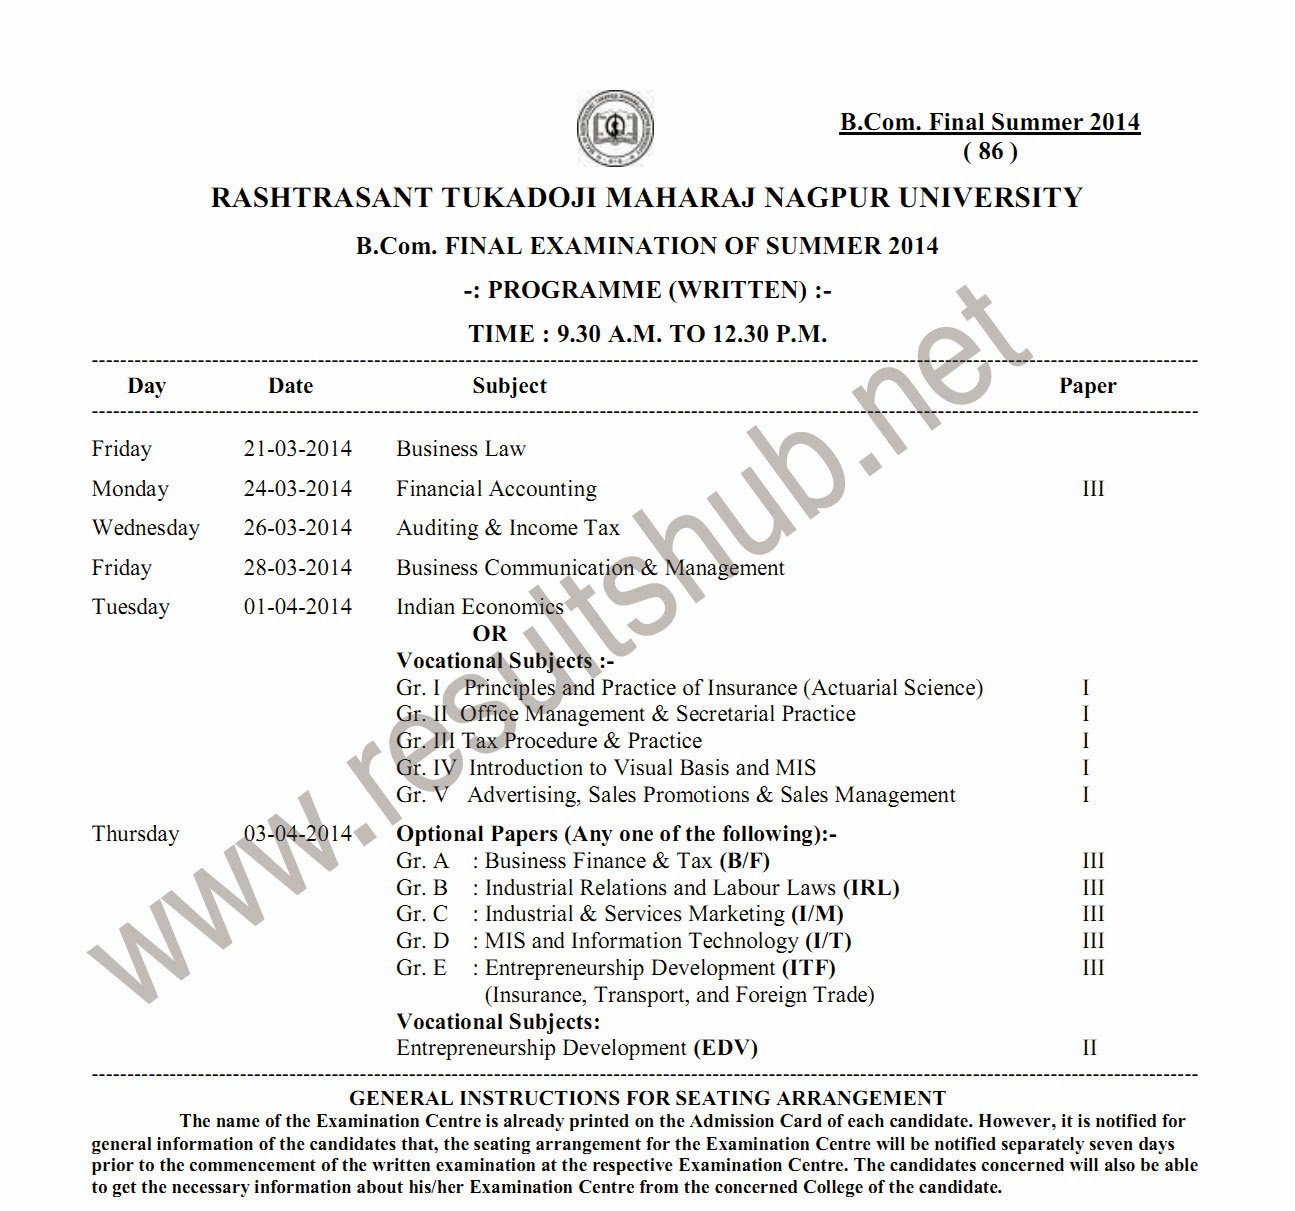 B.Com. Final Year Summer 2014 Timetable RTM nagpur university